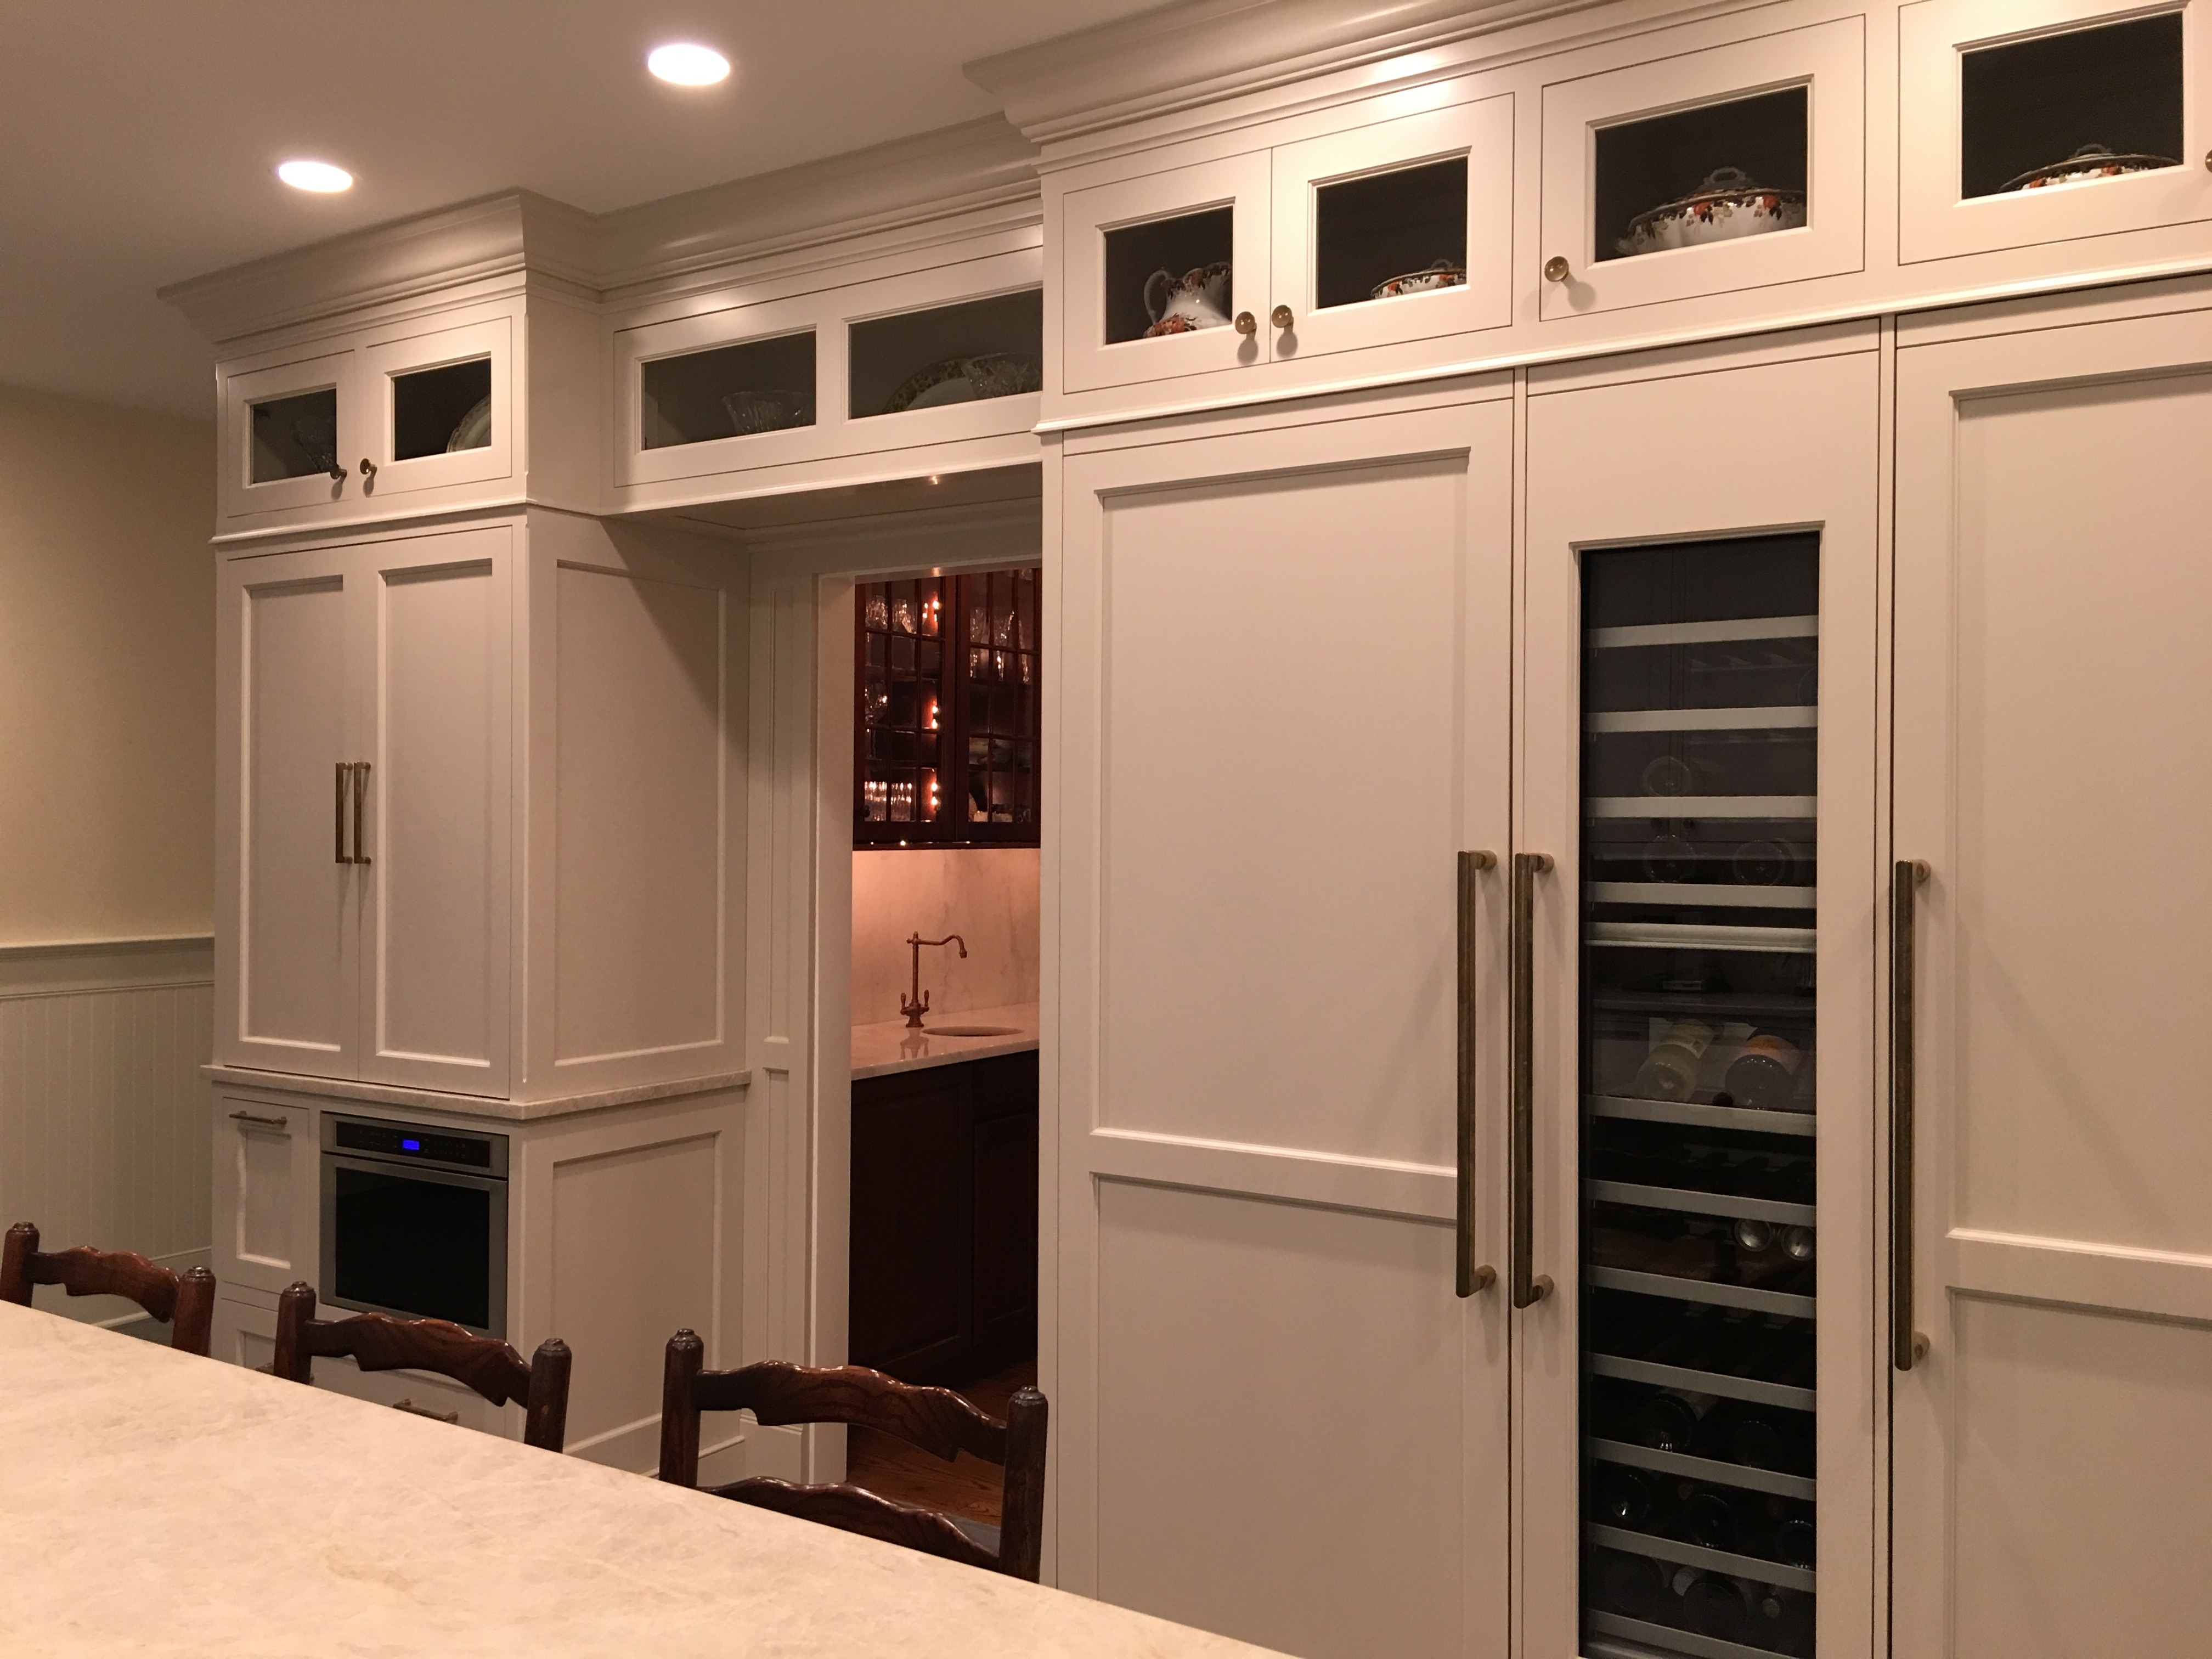 Superior Woodcraft Custom Cabinets In Devon Pa Handcrafted By Superior Woodcraft